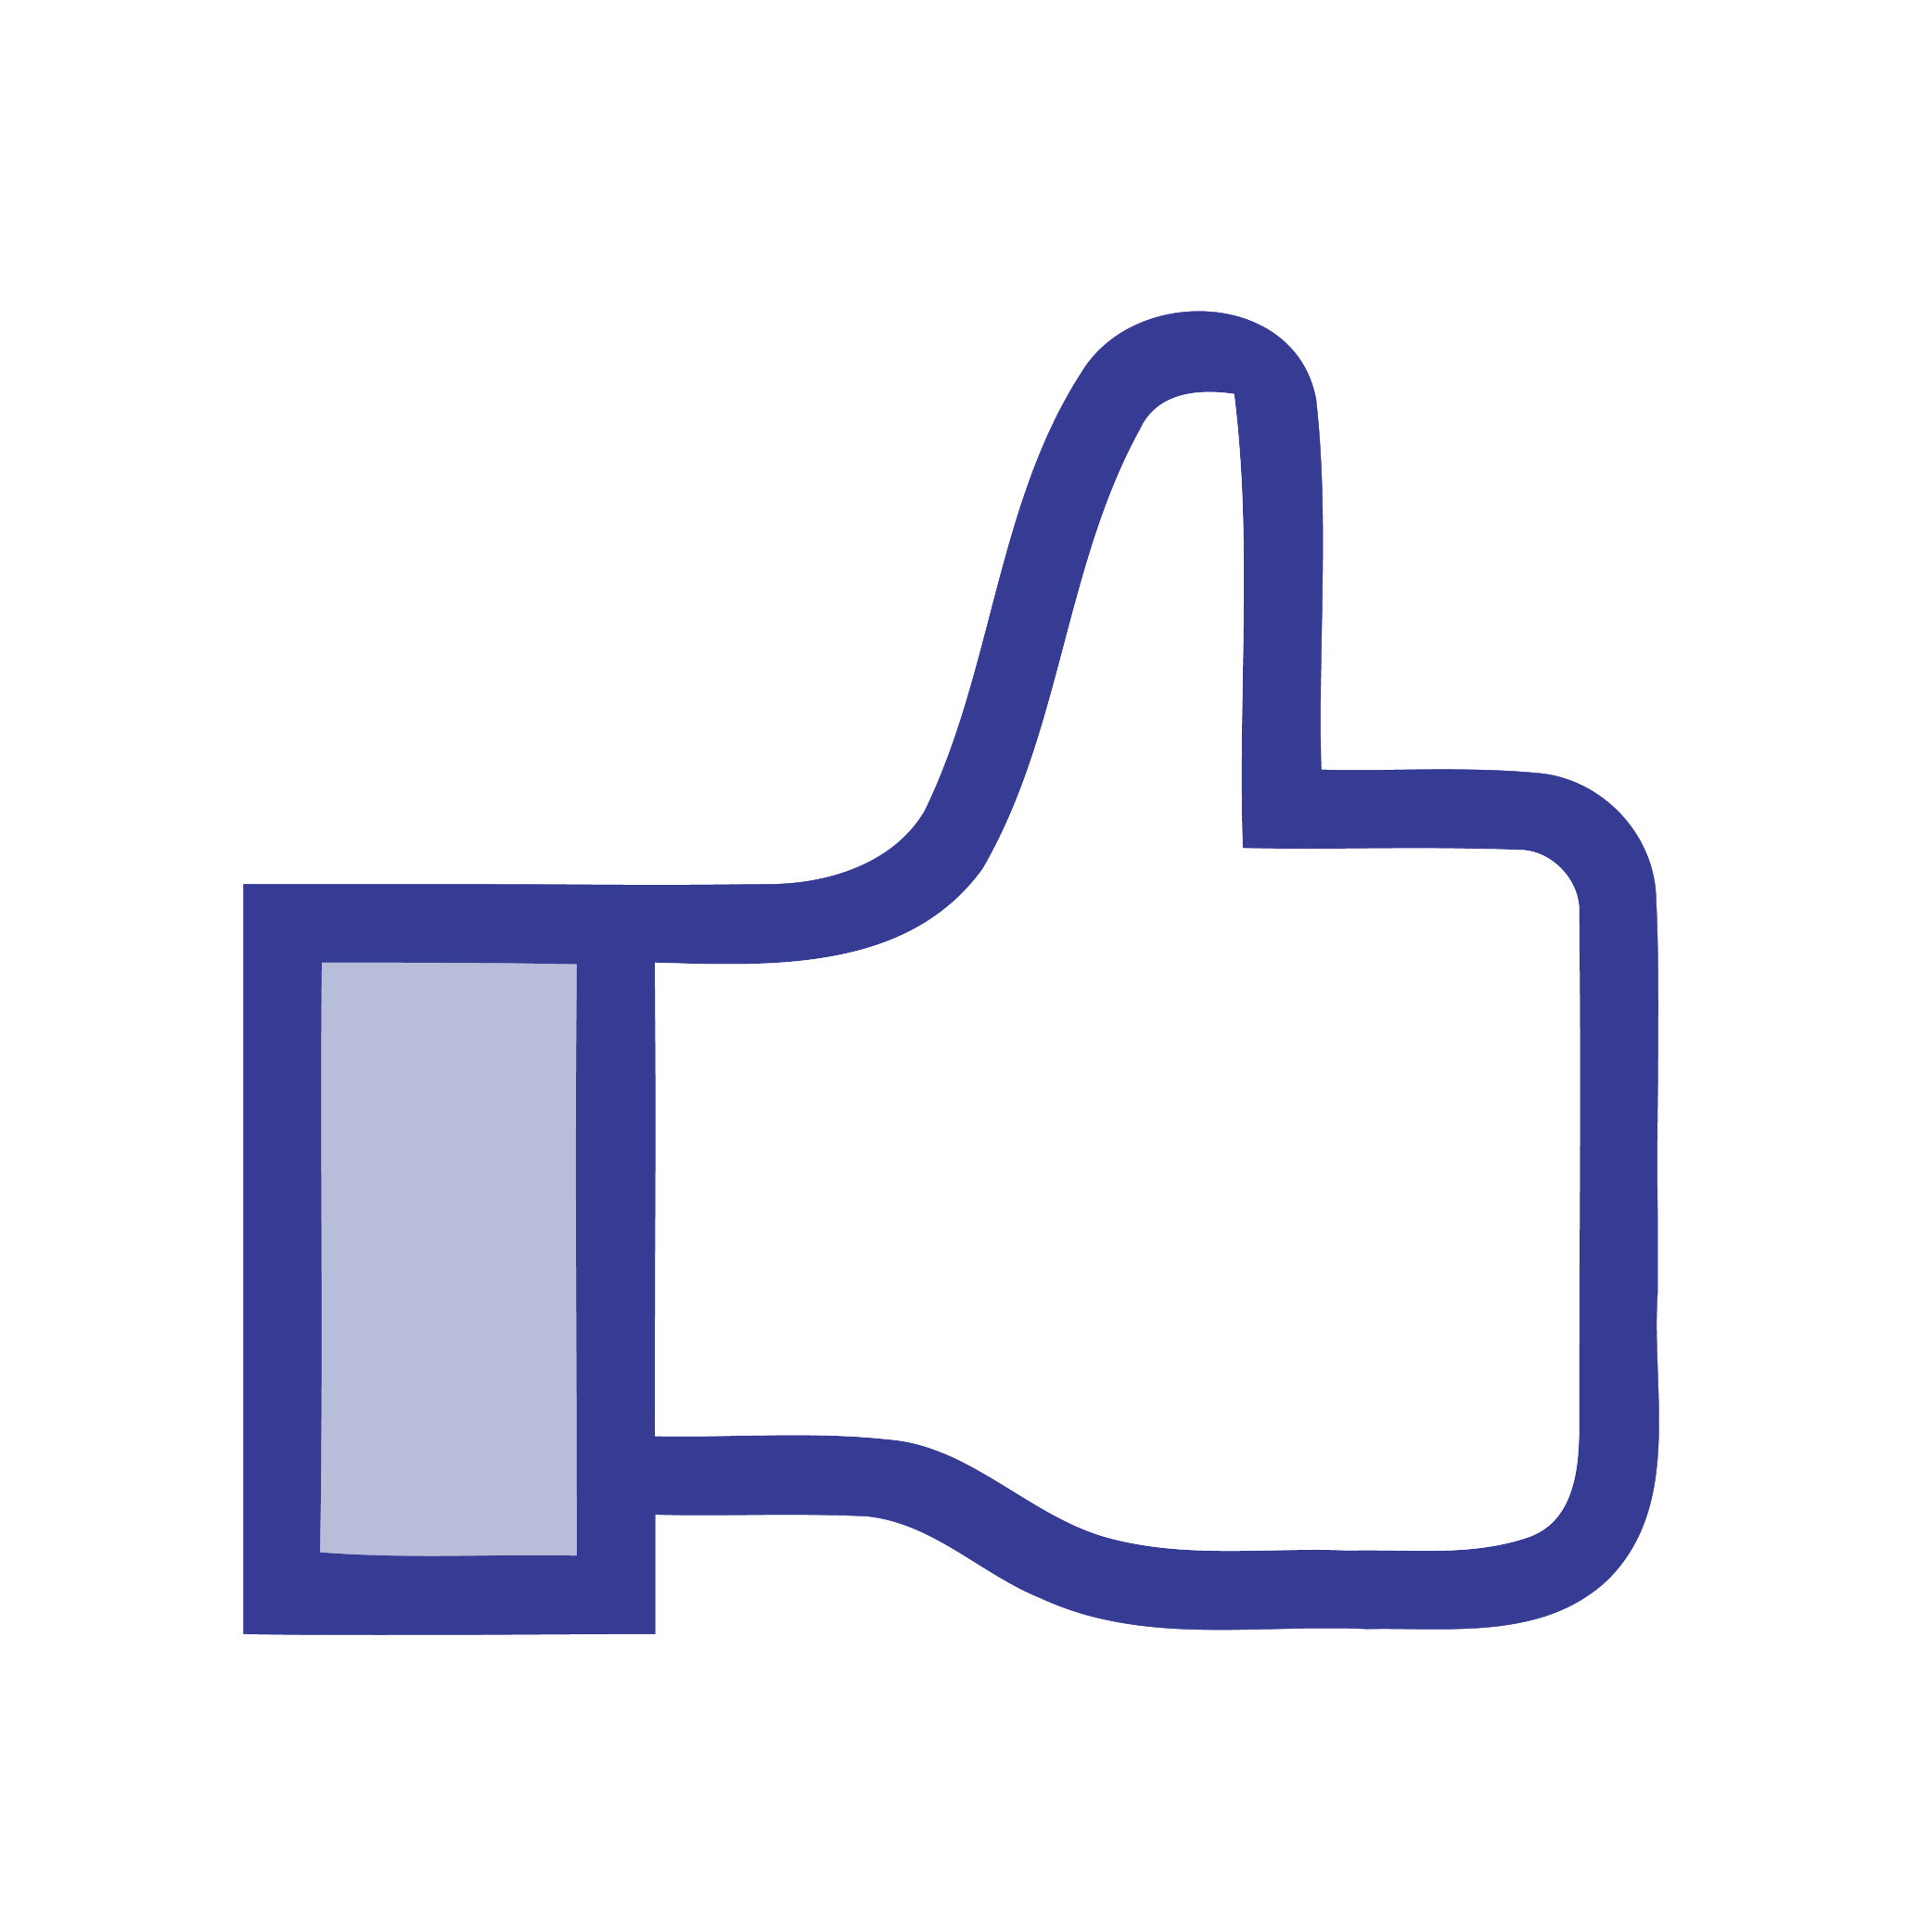 2083x2083 Clipart Facebook Thumbs Up Clipart 2 Image